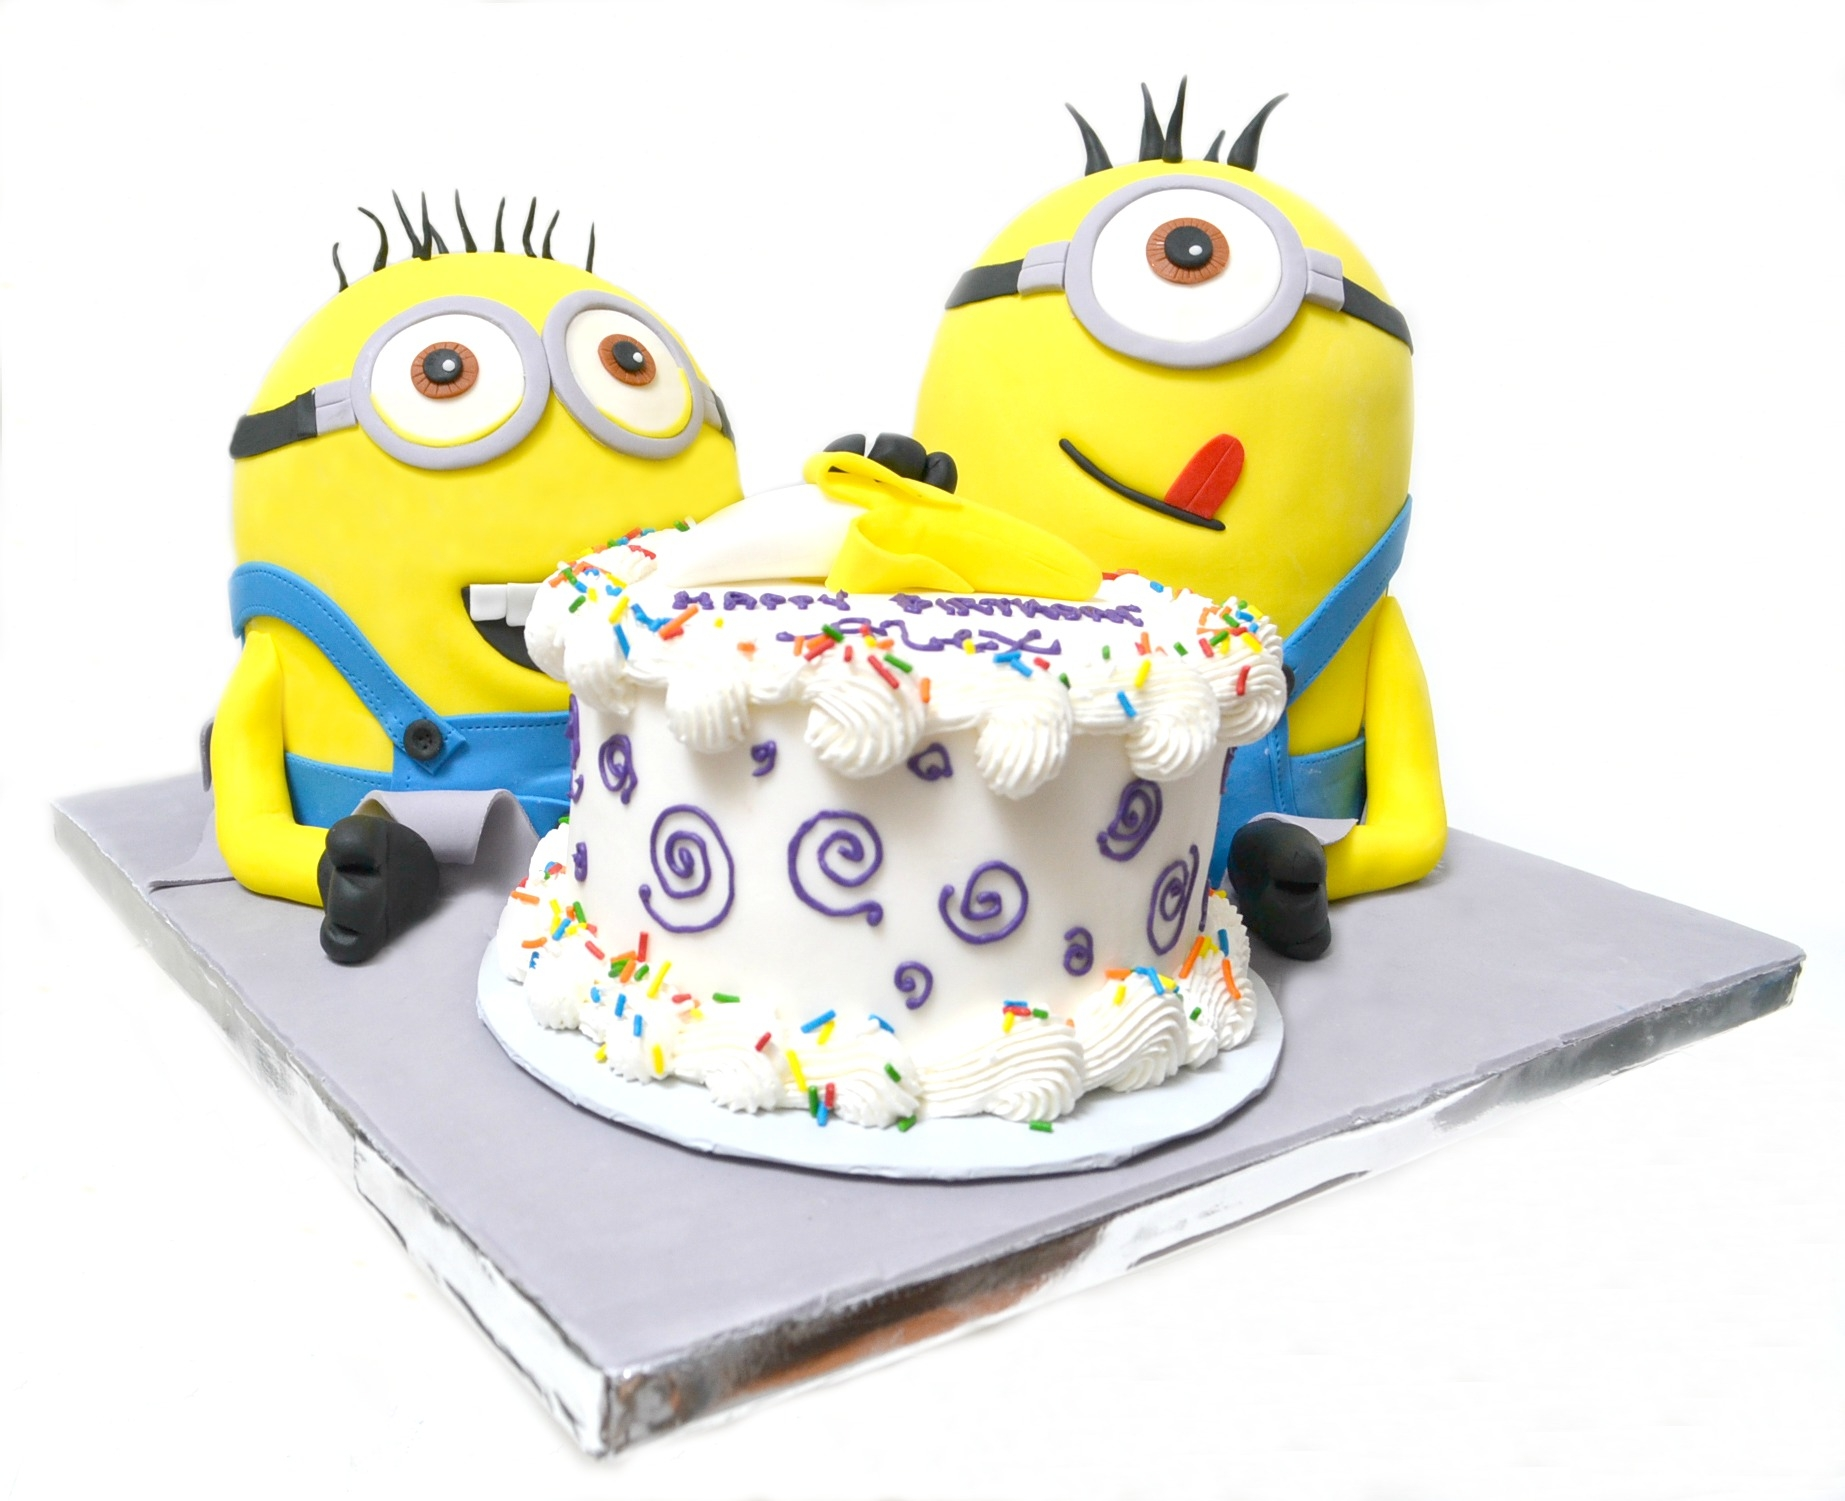 Despicable Me 2 Minions With Banana Birthday Cake - CakeCentral.com